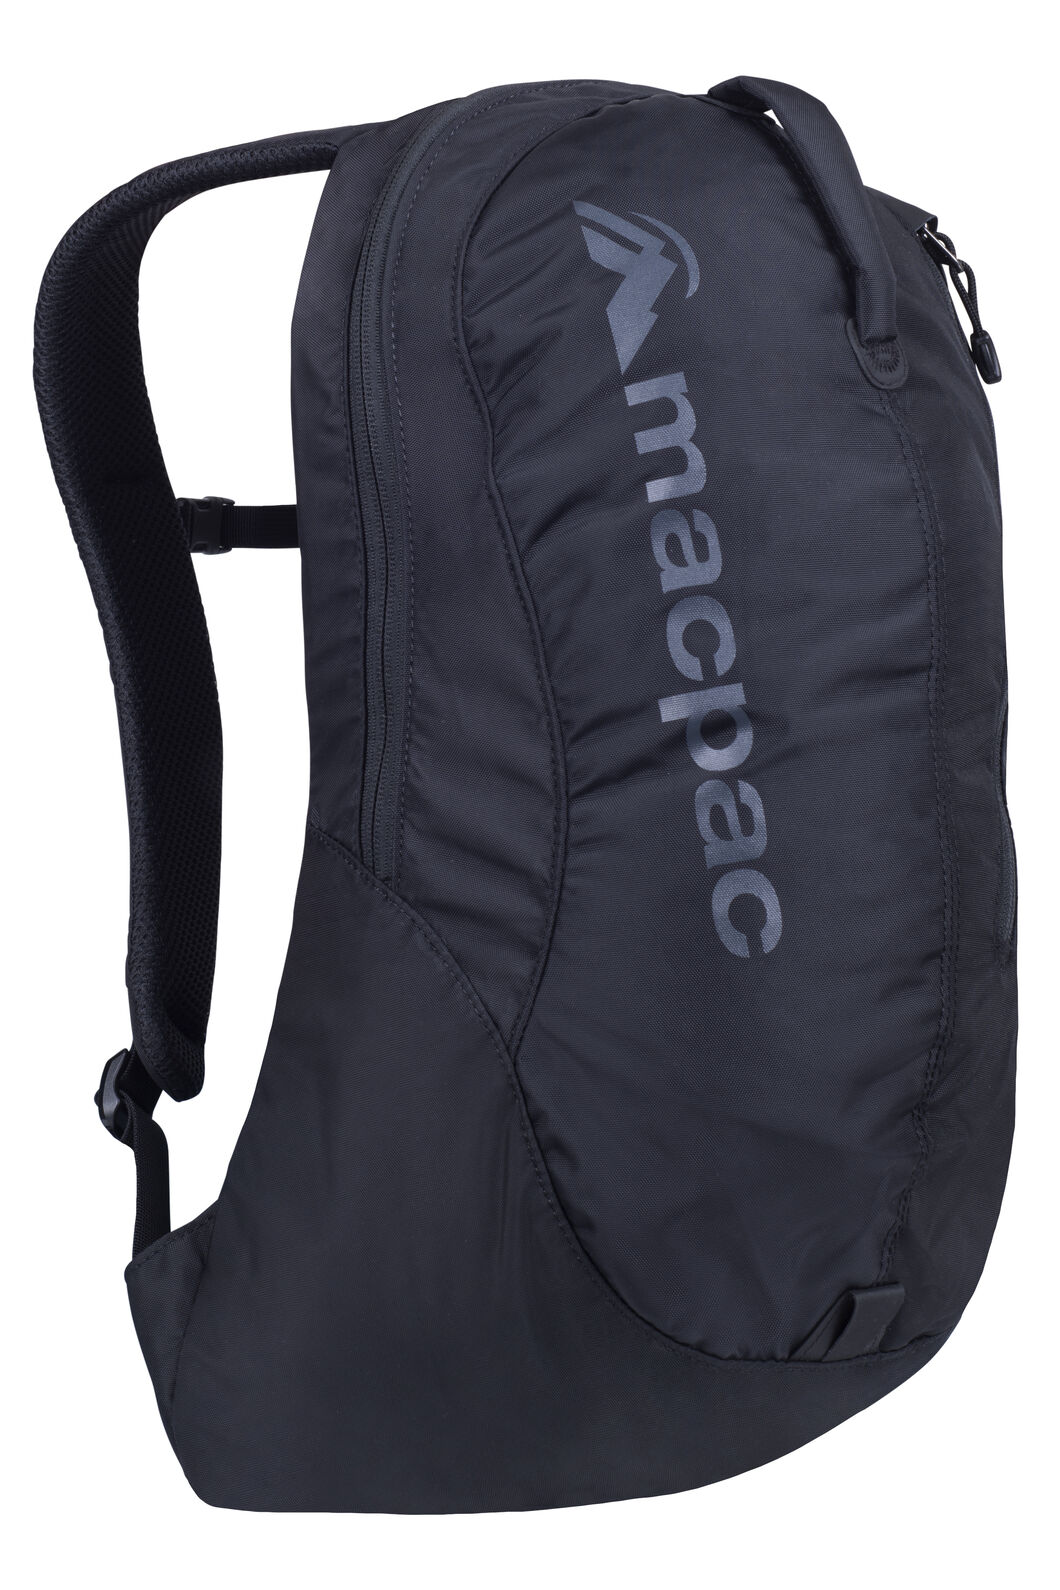 Kahuna 18L Hiking Day Pack, Black, hi-res